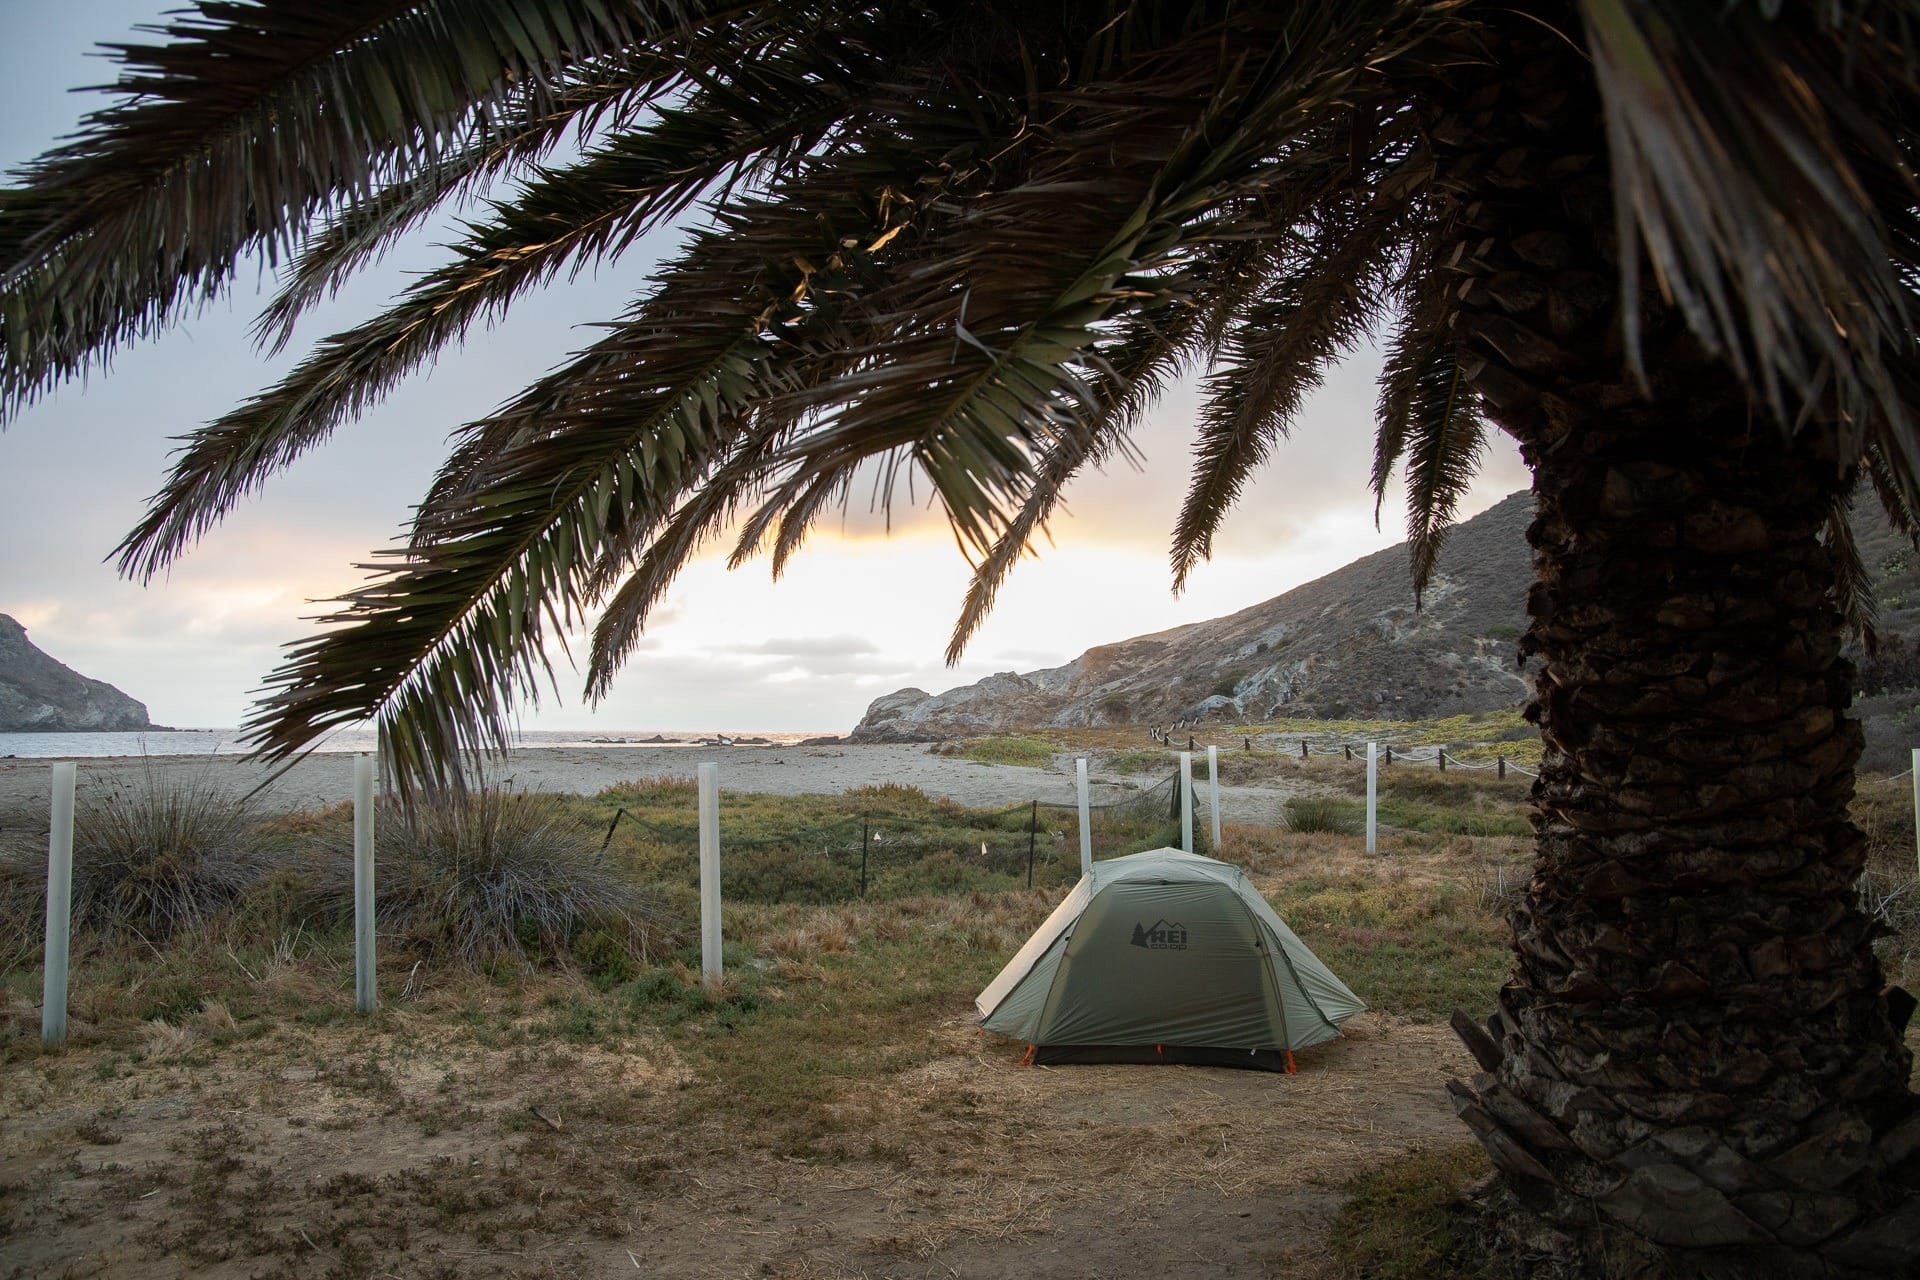 Little Harbor Campground // Plan a backpacking trip on the Trans-Catalina Trail on Catalina Island with this trail guide with tips on the best campsites, water availability, gear & more